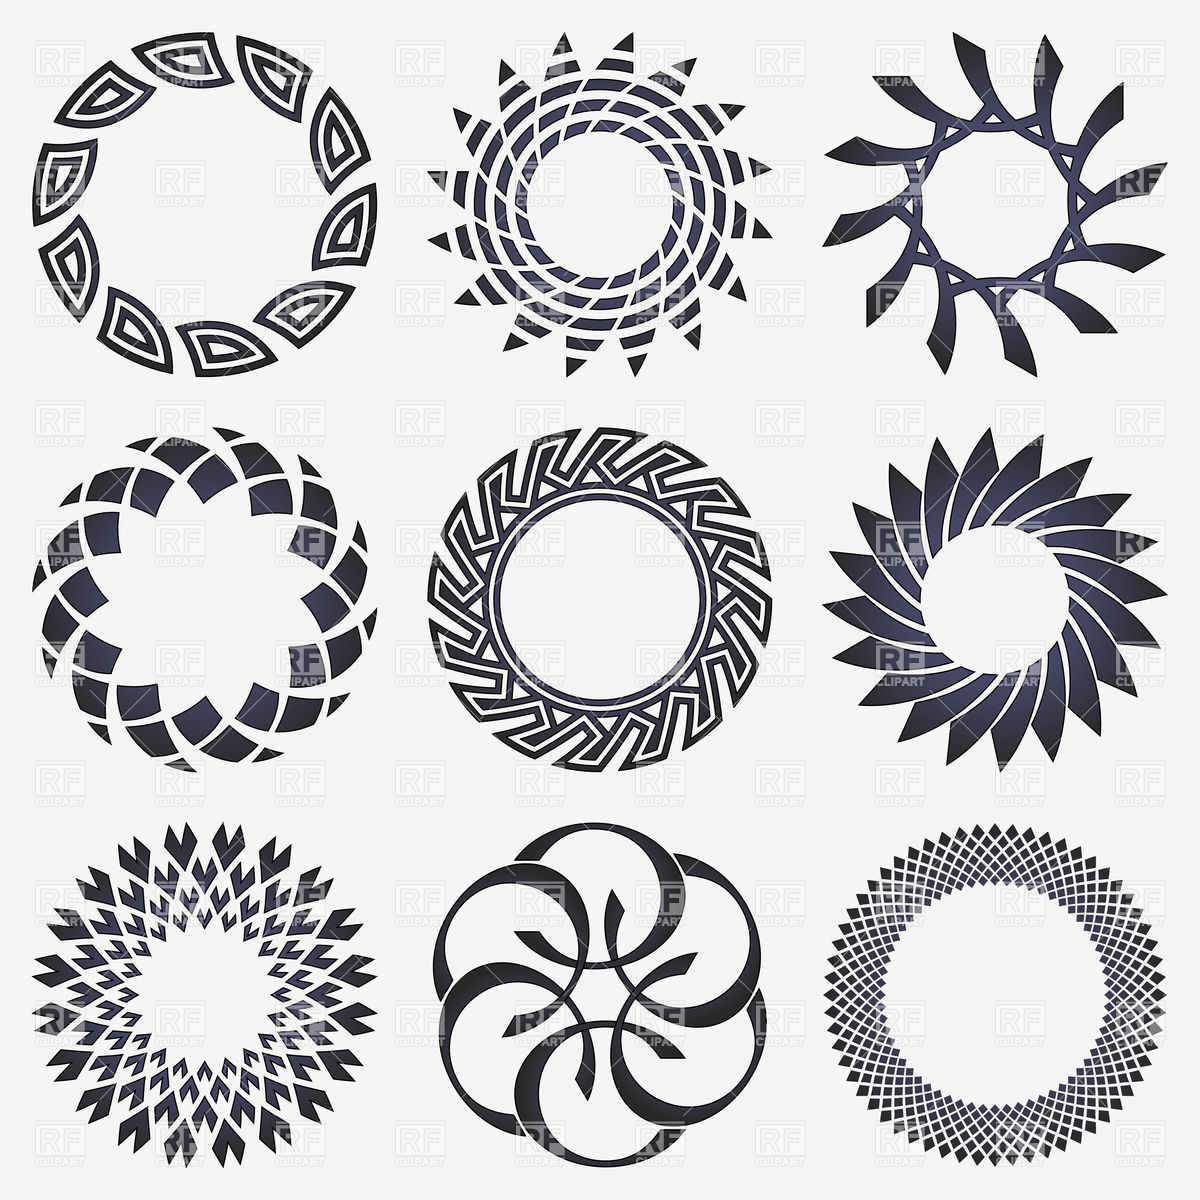 1200x1200 Round Twisted Design Elements Vector Image Vector Artwork Of